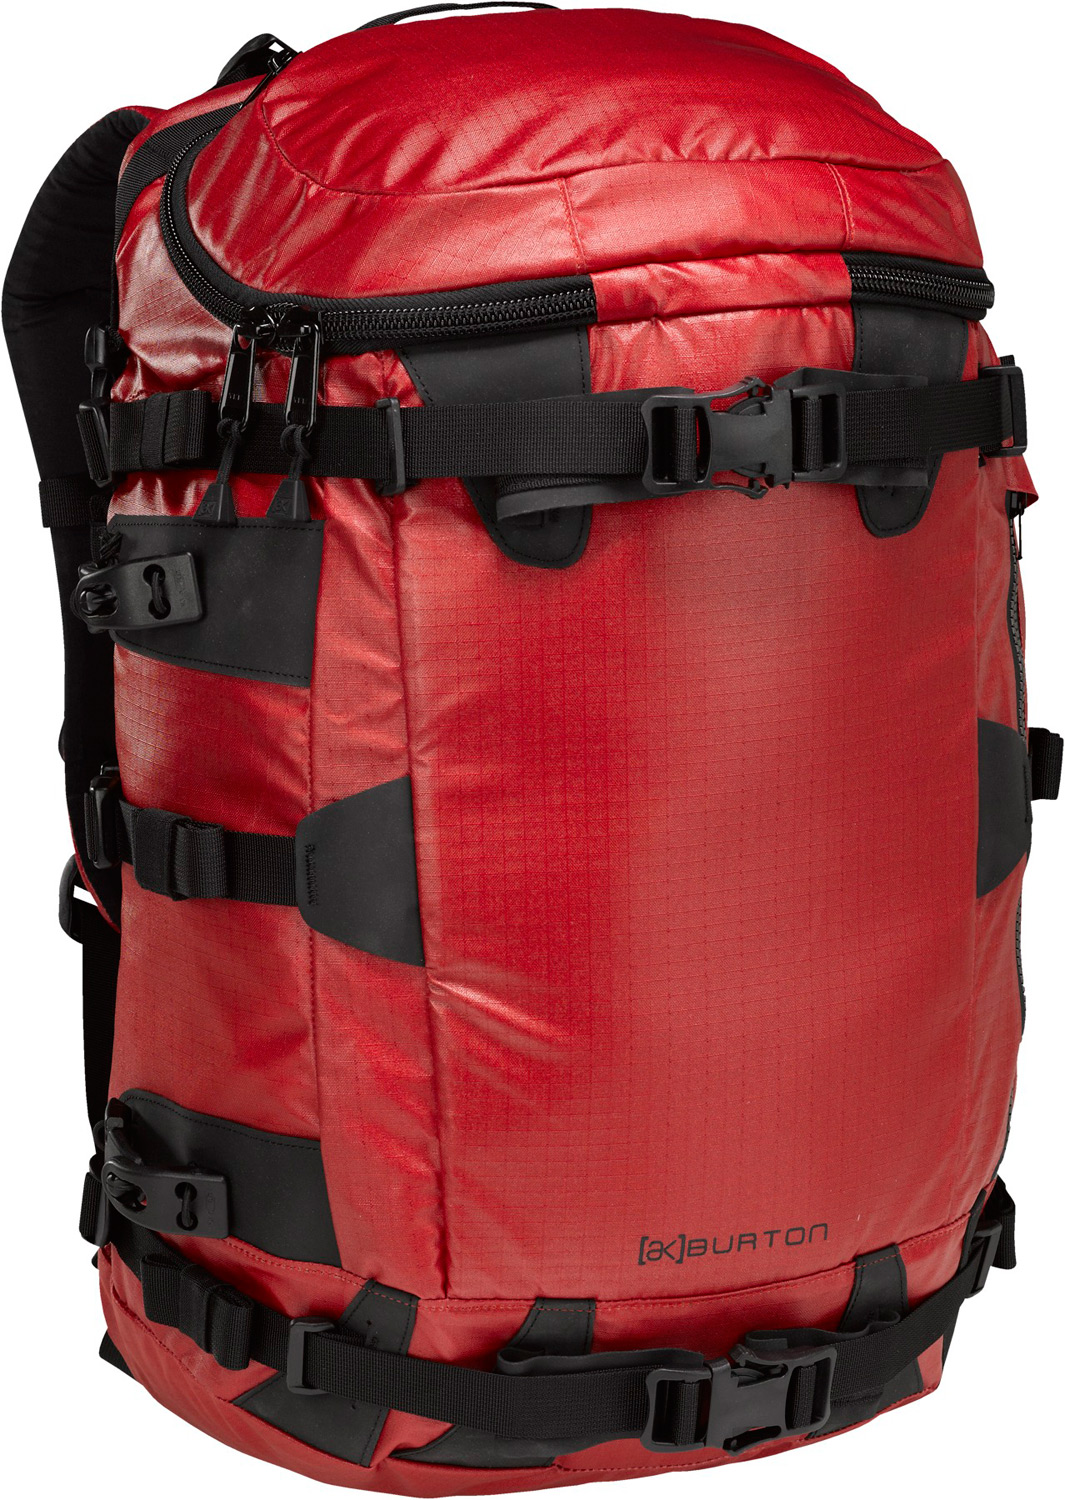 Climbing Guide-grade performance for serious Bc missions. Designed for reduced weight and reliability on the approach, with a wet/dry pocket for stashing climbing skins on the ride down.Key Features of the Burton AK 31L Backpack: Fabrication: 420D n66 nylon cordura with Two-Sided PU coating and 210D nylon Ripstop Lining oversized Pail Lid Main Entry with Fleece-Lined accessory Pocket cush Ergonomic Shoulder Harness Low-Profile Sled-Ready Horizontal Board carry Vertical Board carry and Triple- Strap Pack compression System External Pole Storage Front Storage Pocket for climbing Skins Easy access Internal Shovel and Probe Storage Pocket Fleece-Lined Goggle / accessory Pocket Hydration compatible Padded waist Strap [23in x 10in x 9in] [58cm x 25cm x 22cm] 31L - $101.95